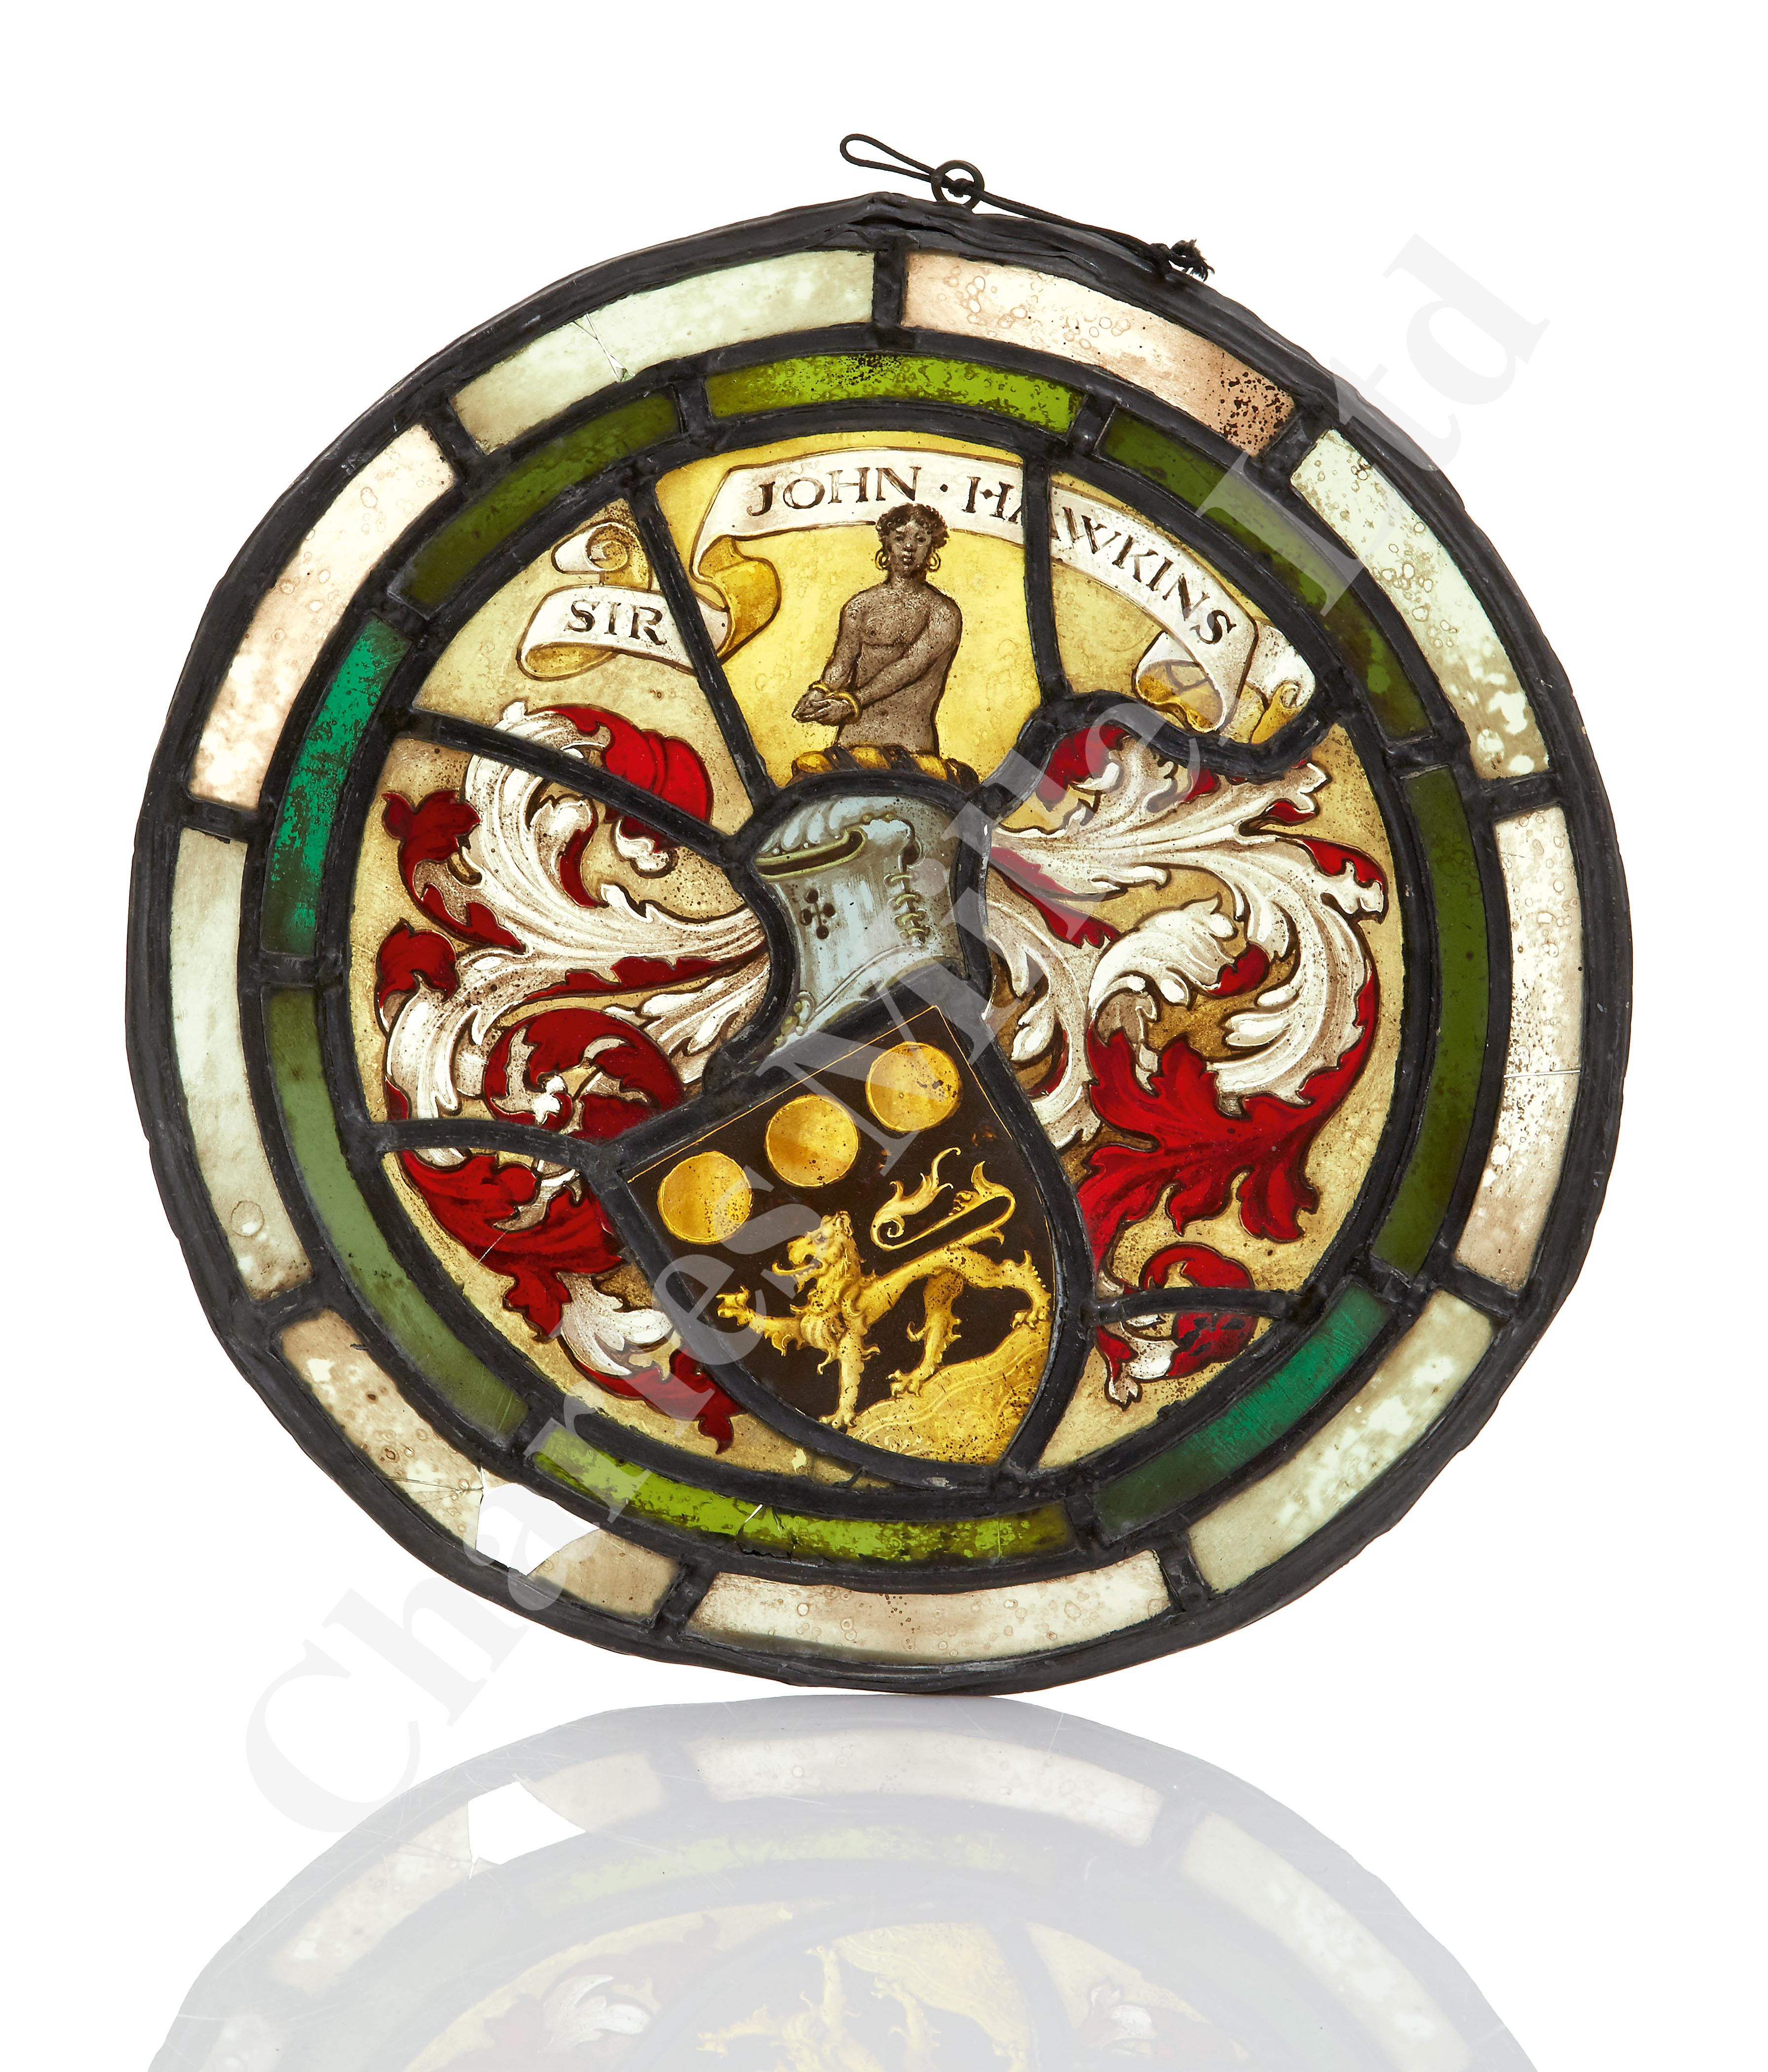 Lot 208 - A 19TH CENTURY STAINED GLASS ROUNDEL BEARING THE ARMS OF ADMIRAL SIR JOHN HAWKINS